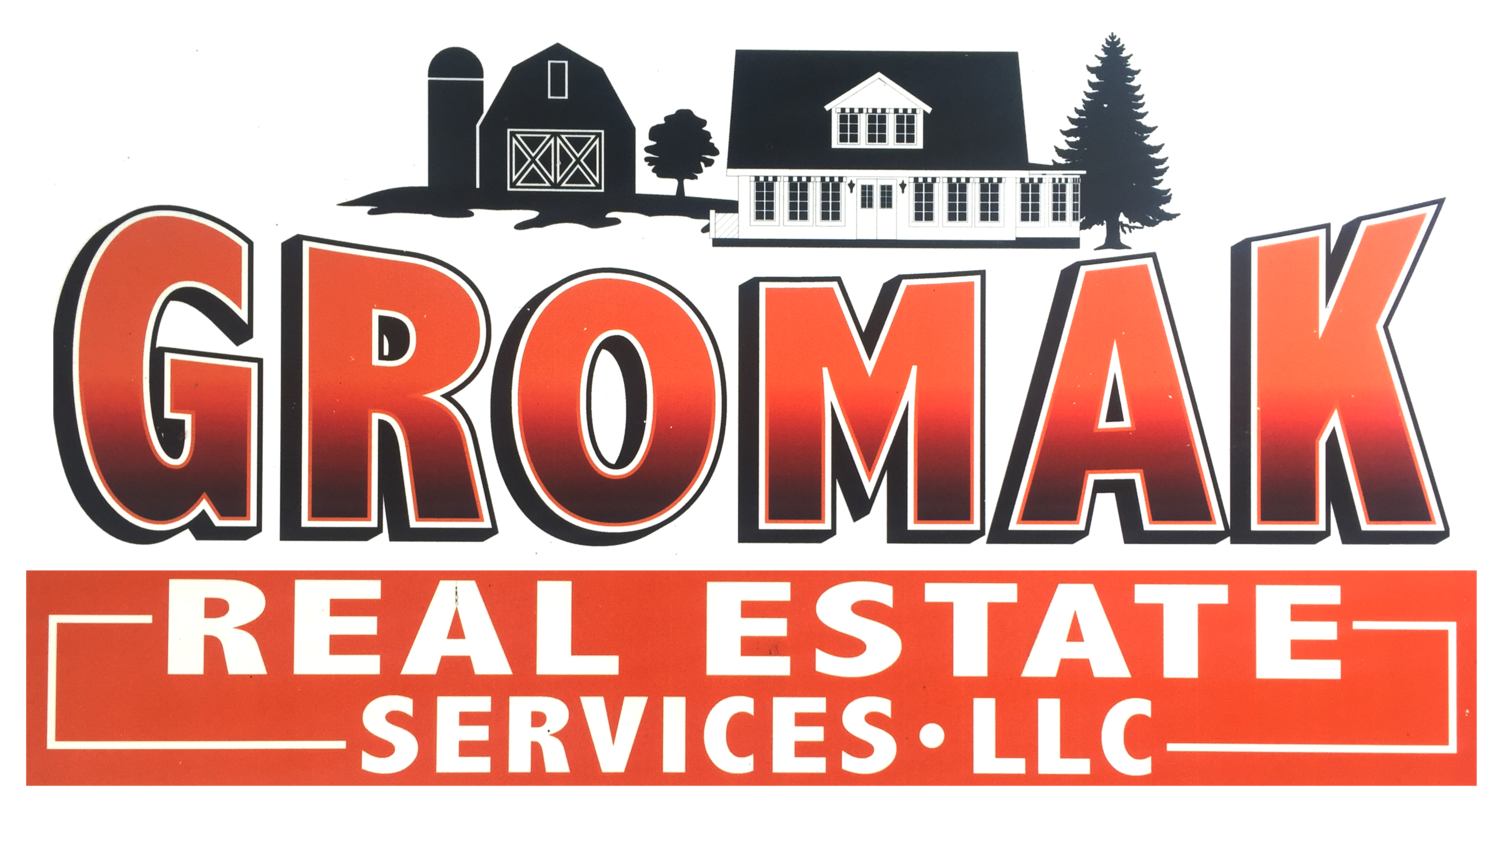 Gromak Real Estate Services LLC